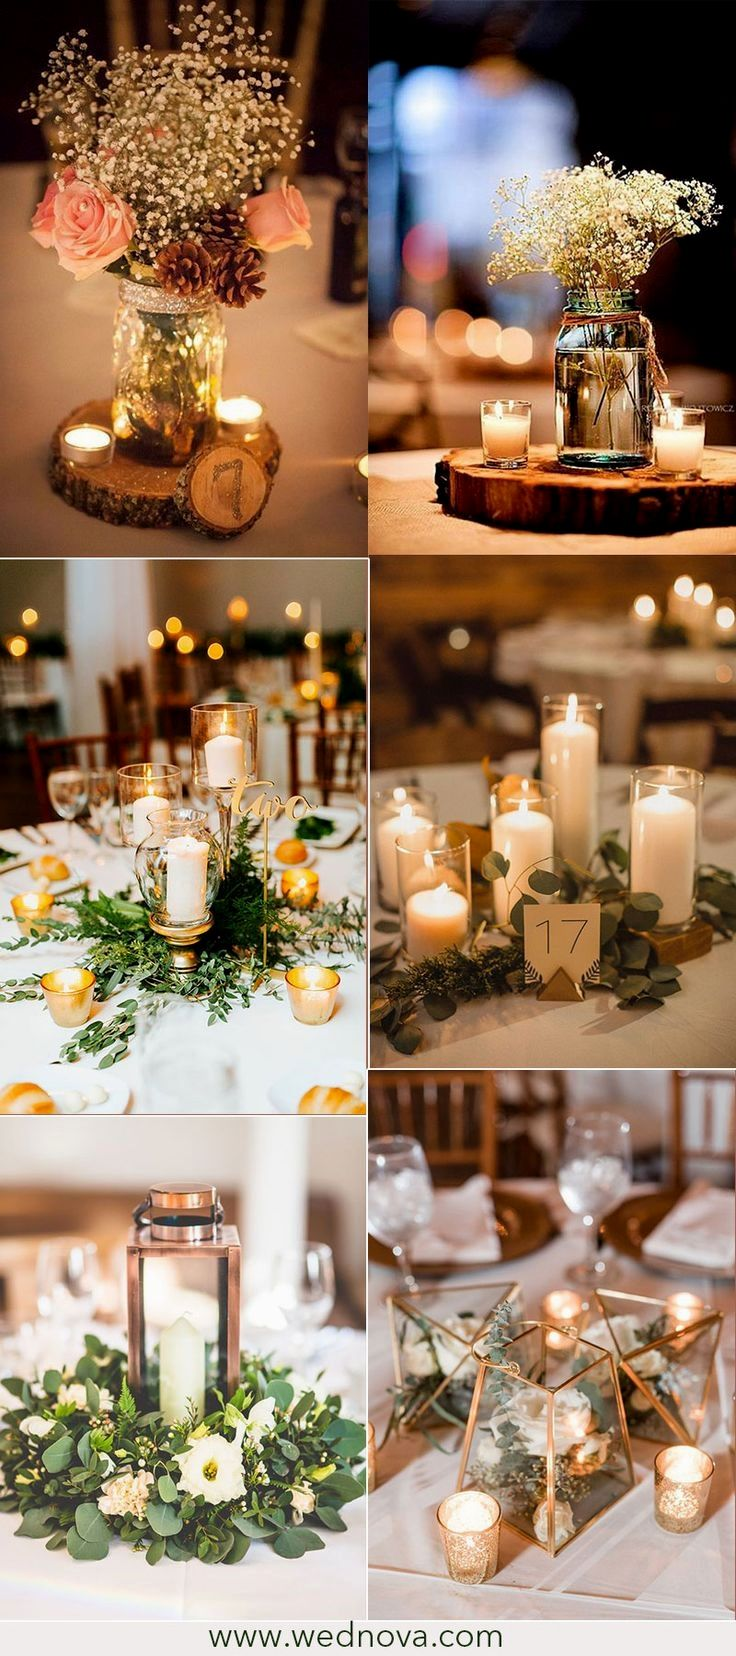 Rustic Wedding Decoration  Rustic wedding table, Rustic wedding